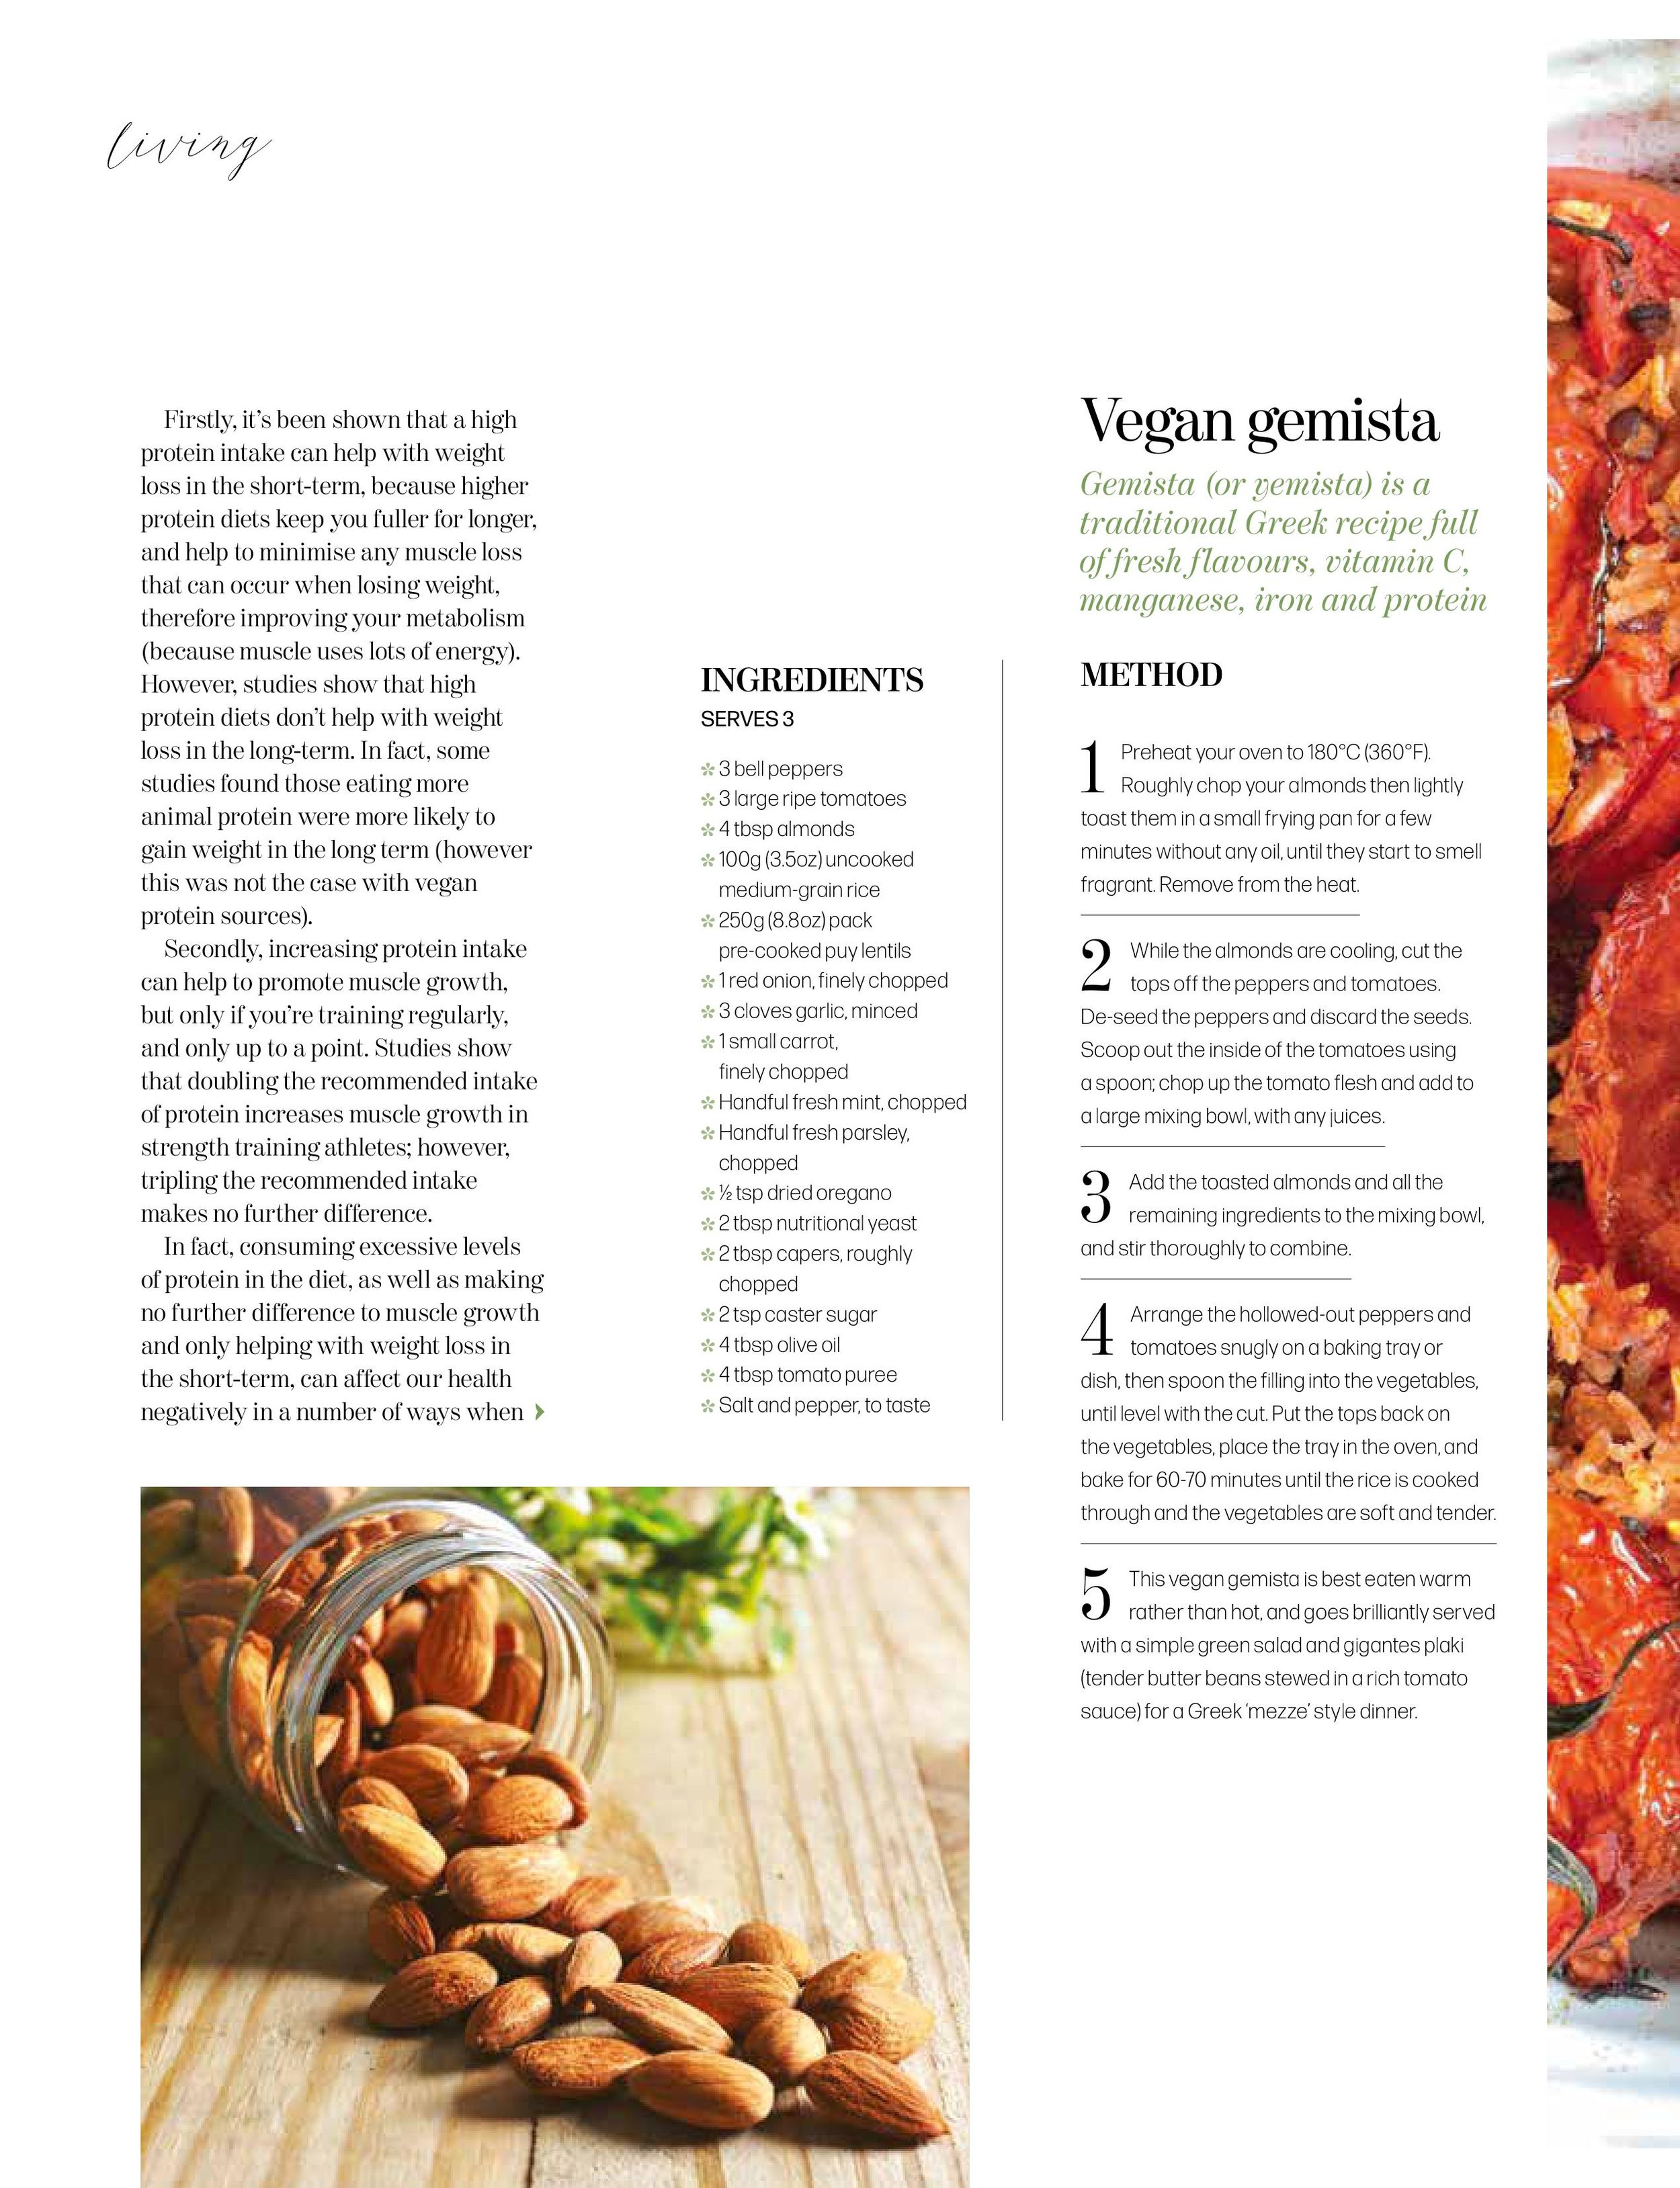 vegan nutrition article protein health fitness vegan nutritionist